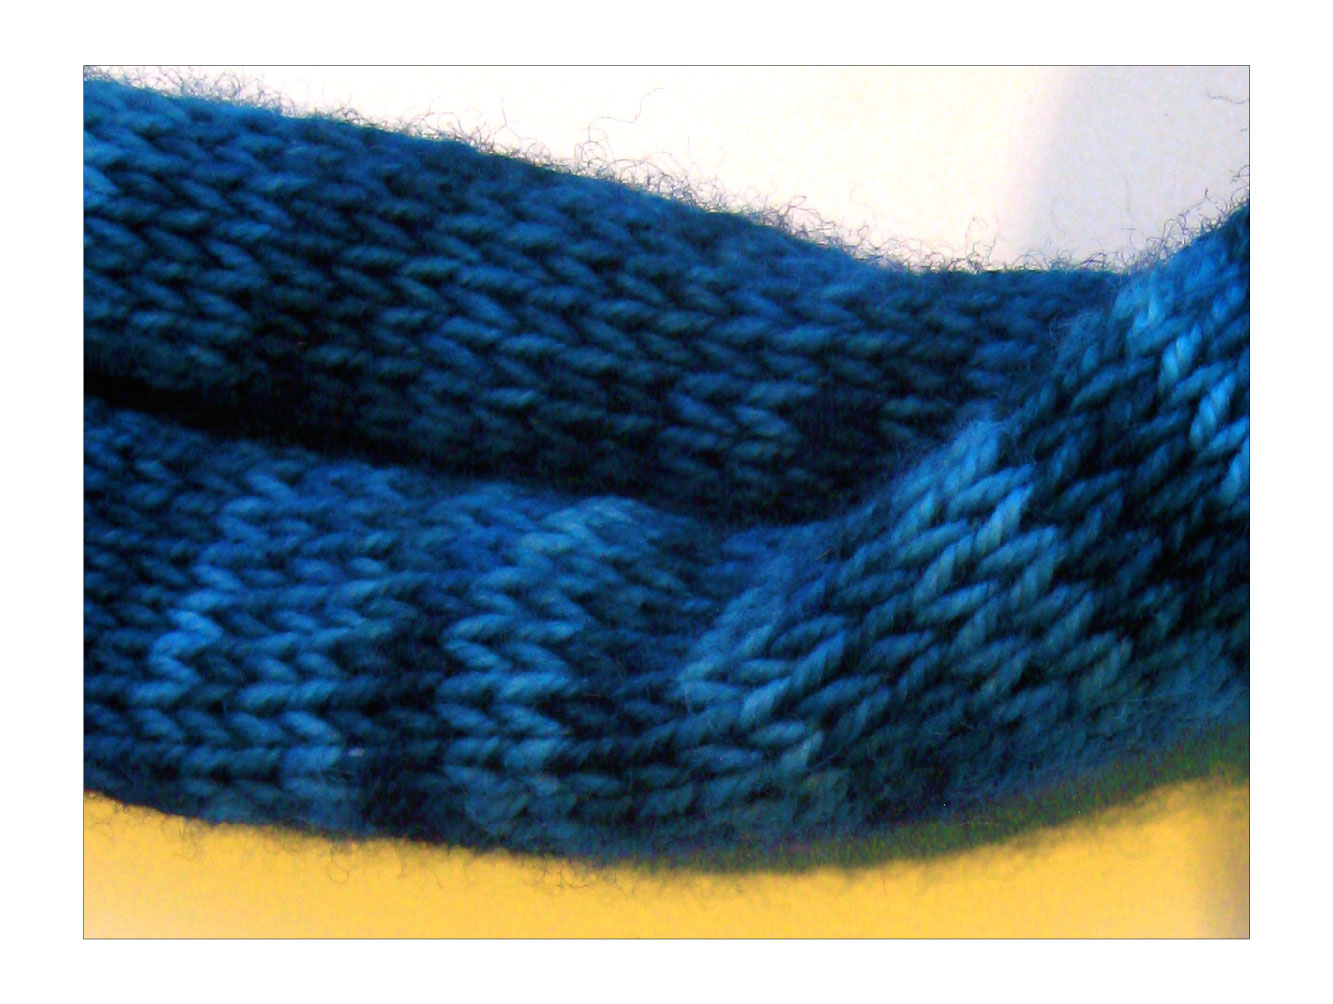 Knitting Stitch To Prevent Curling : TECHknitting: Curling scarf rescue mission--part three: transforming stockine...